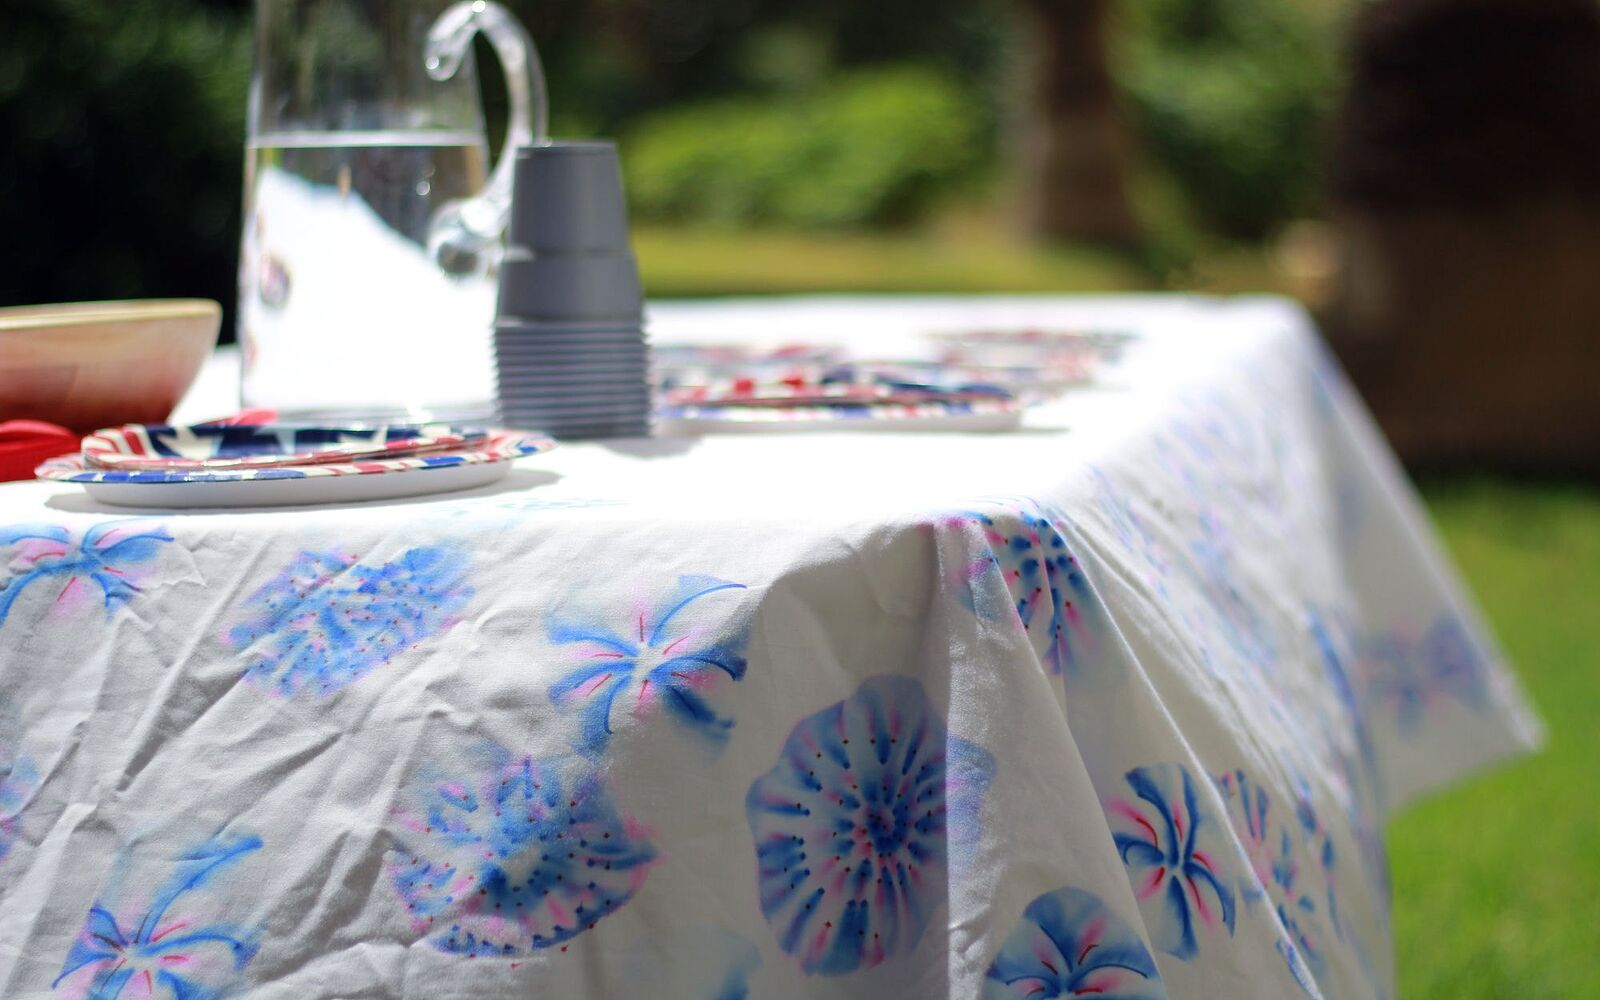 s 30 adorable diy ideas for july 4th, Add Sharpie alcohol fireworks to your table